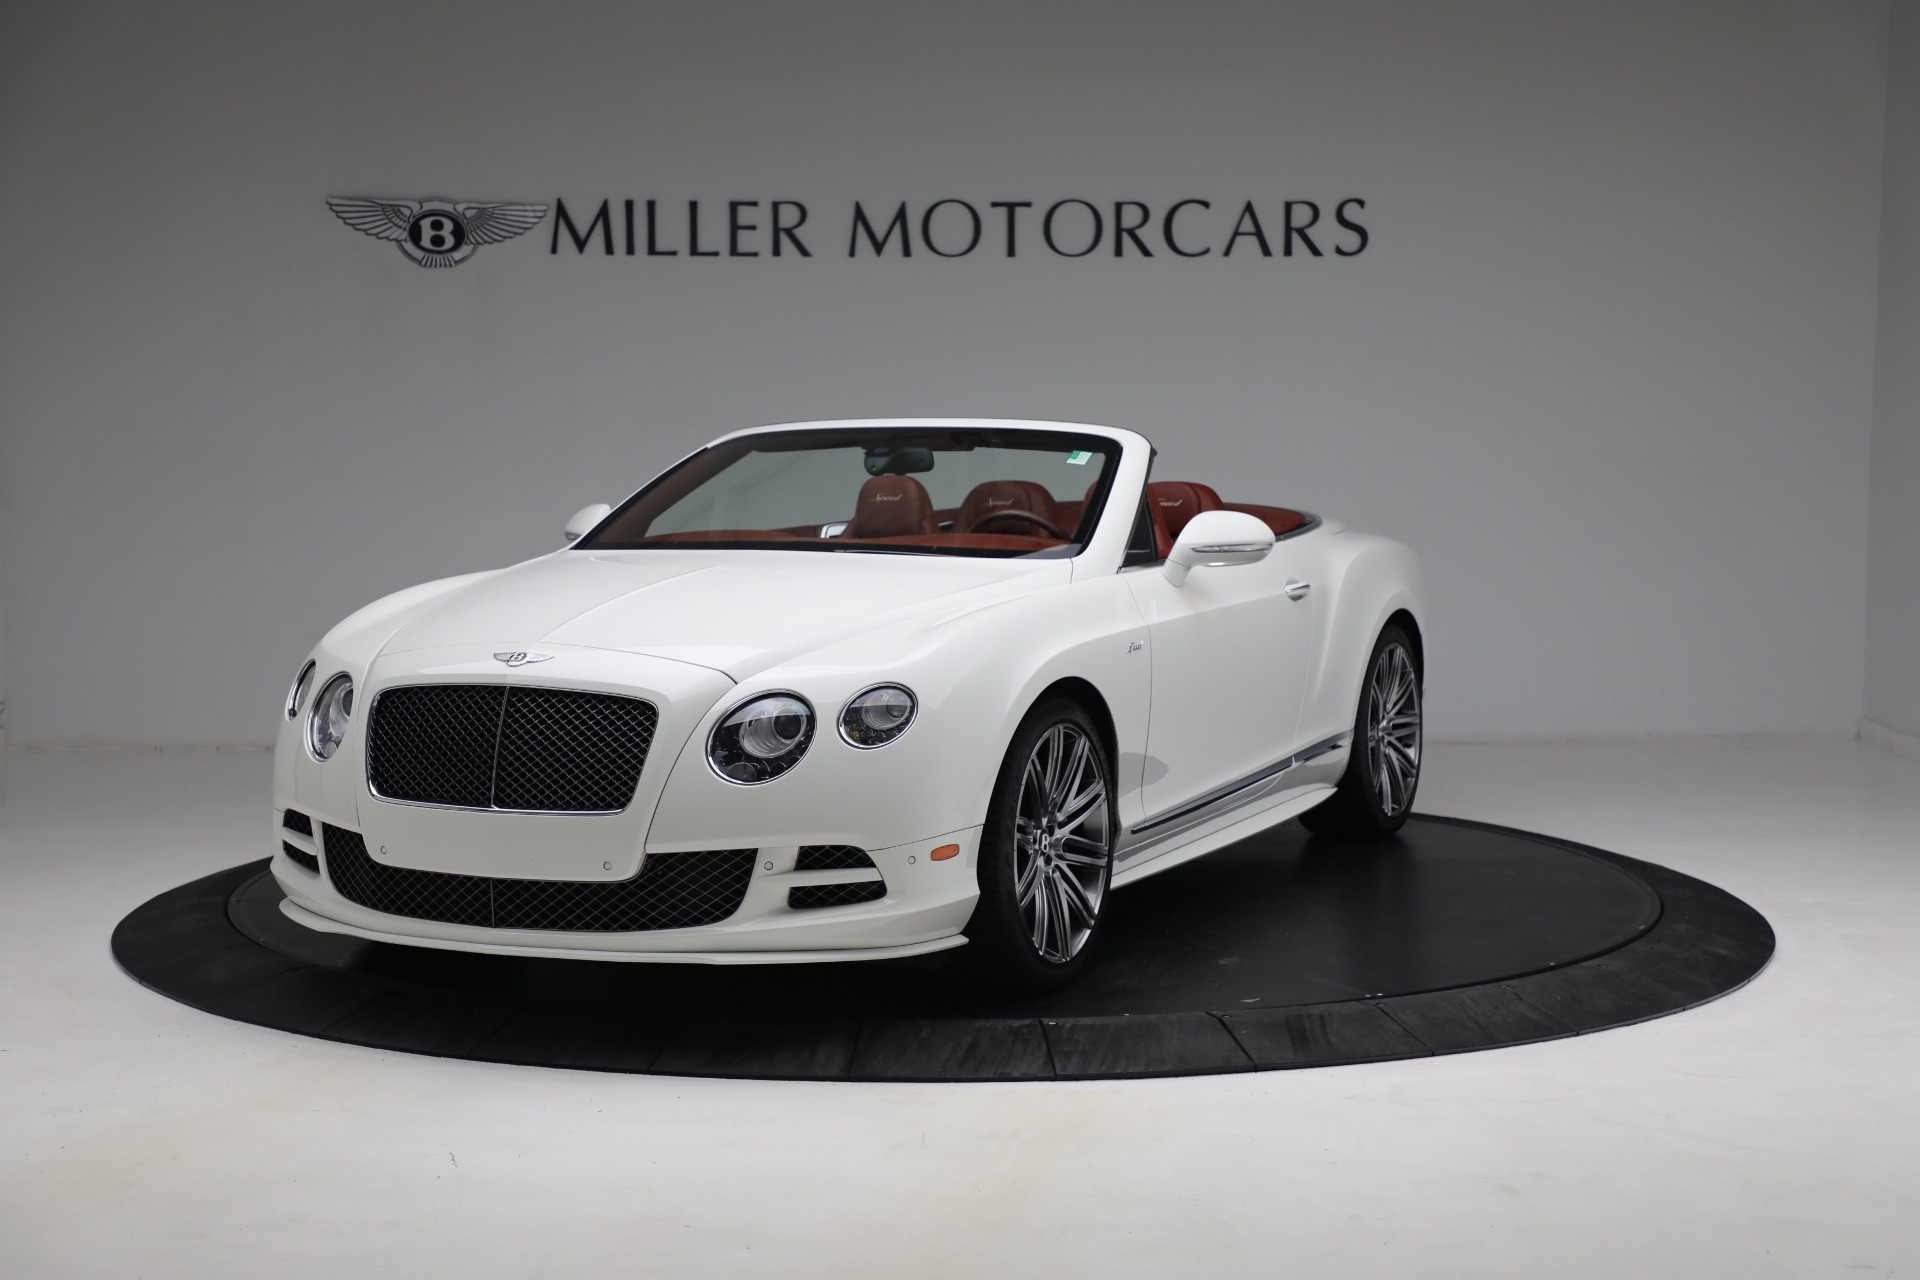 Used 2015 Bentley Continental GT Speed for sale $145,900 at Bentley Greenwich in Greenwich CT 06830 1